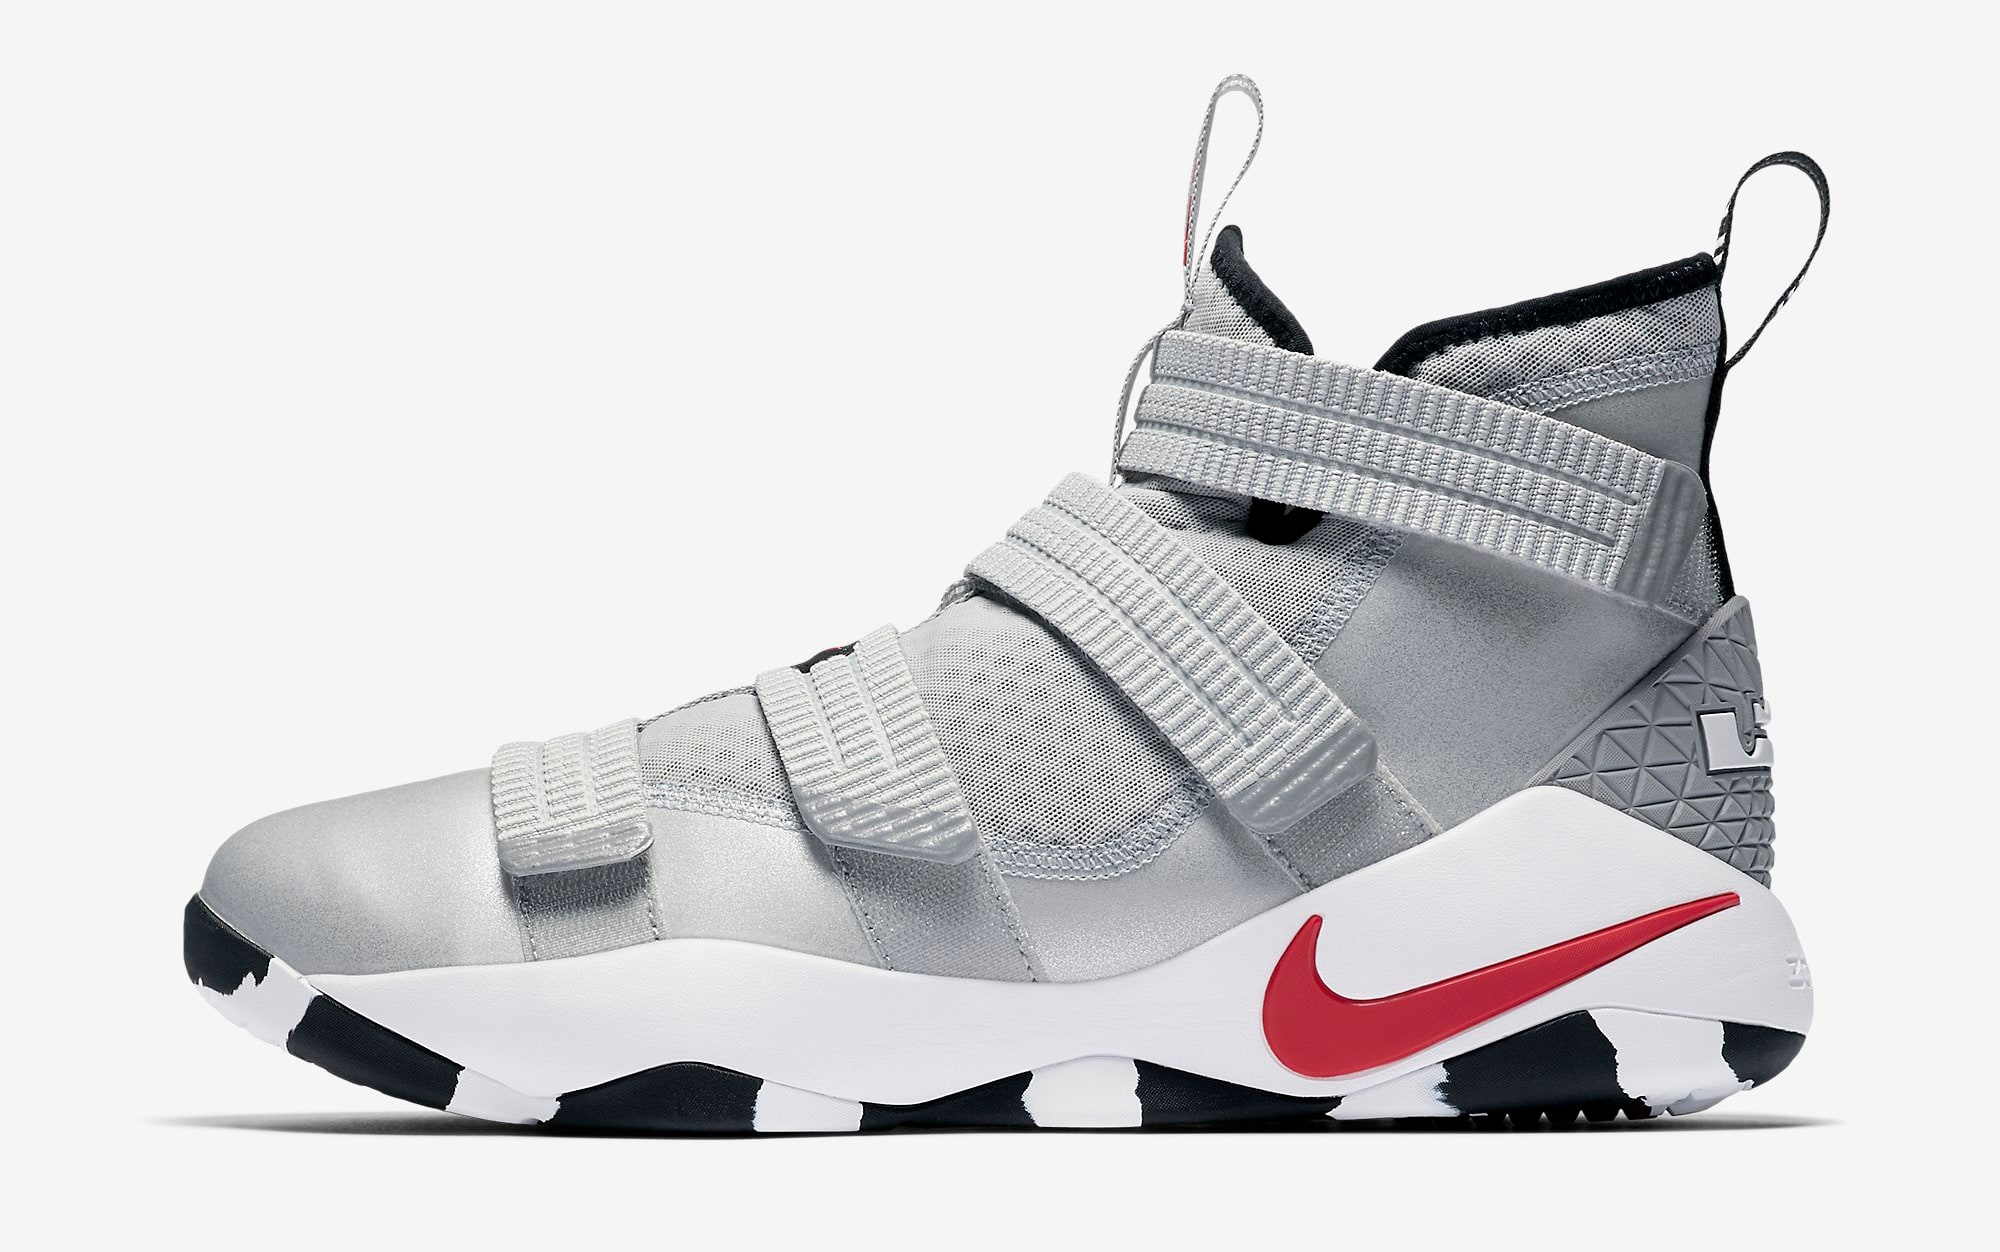 c8f2e57989cb7 ... on sale nike lebron soldier xi sfg metallic silver